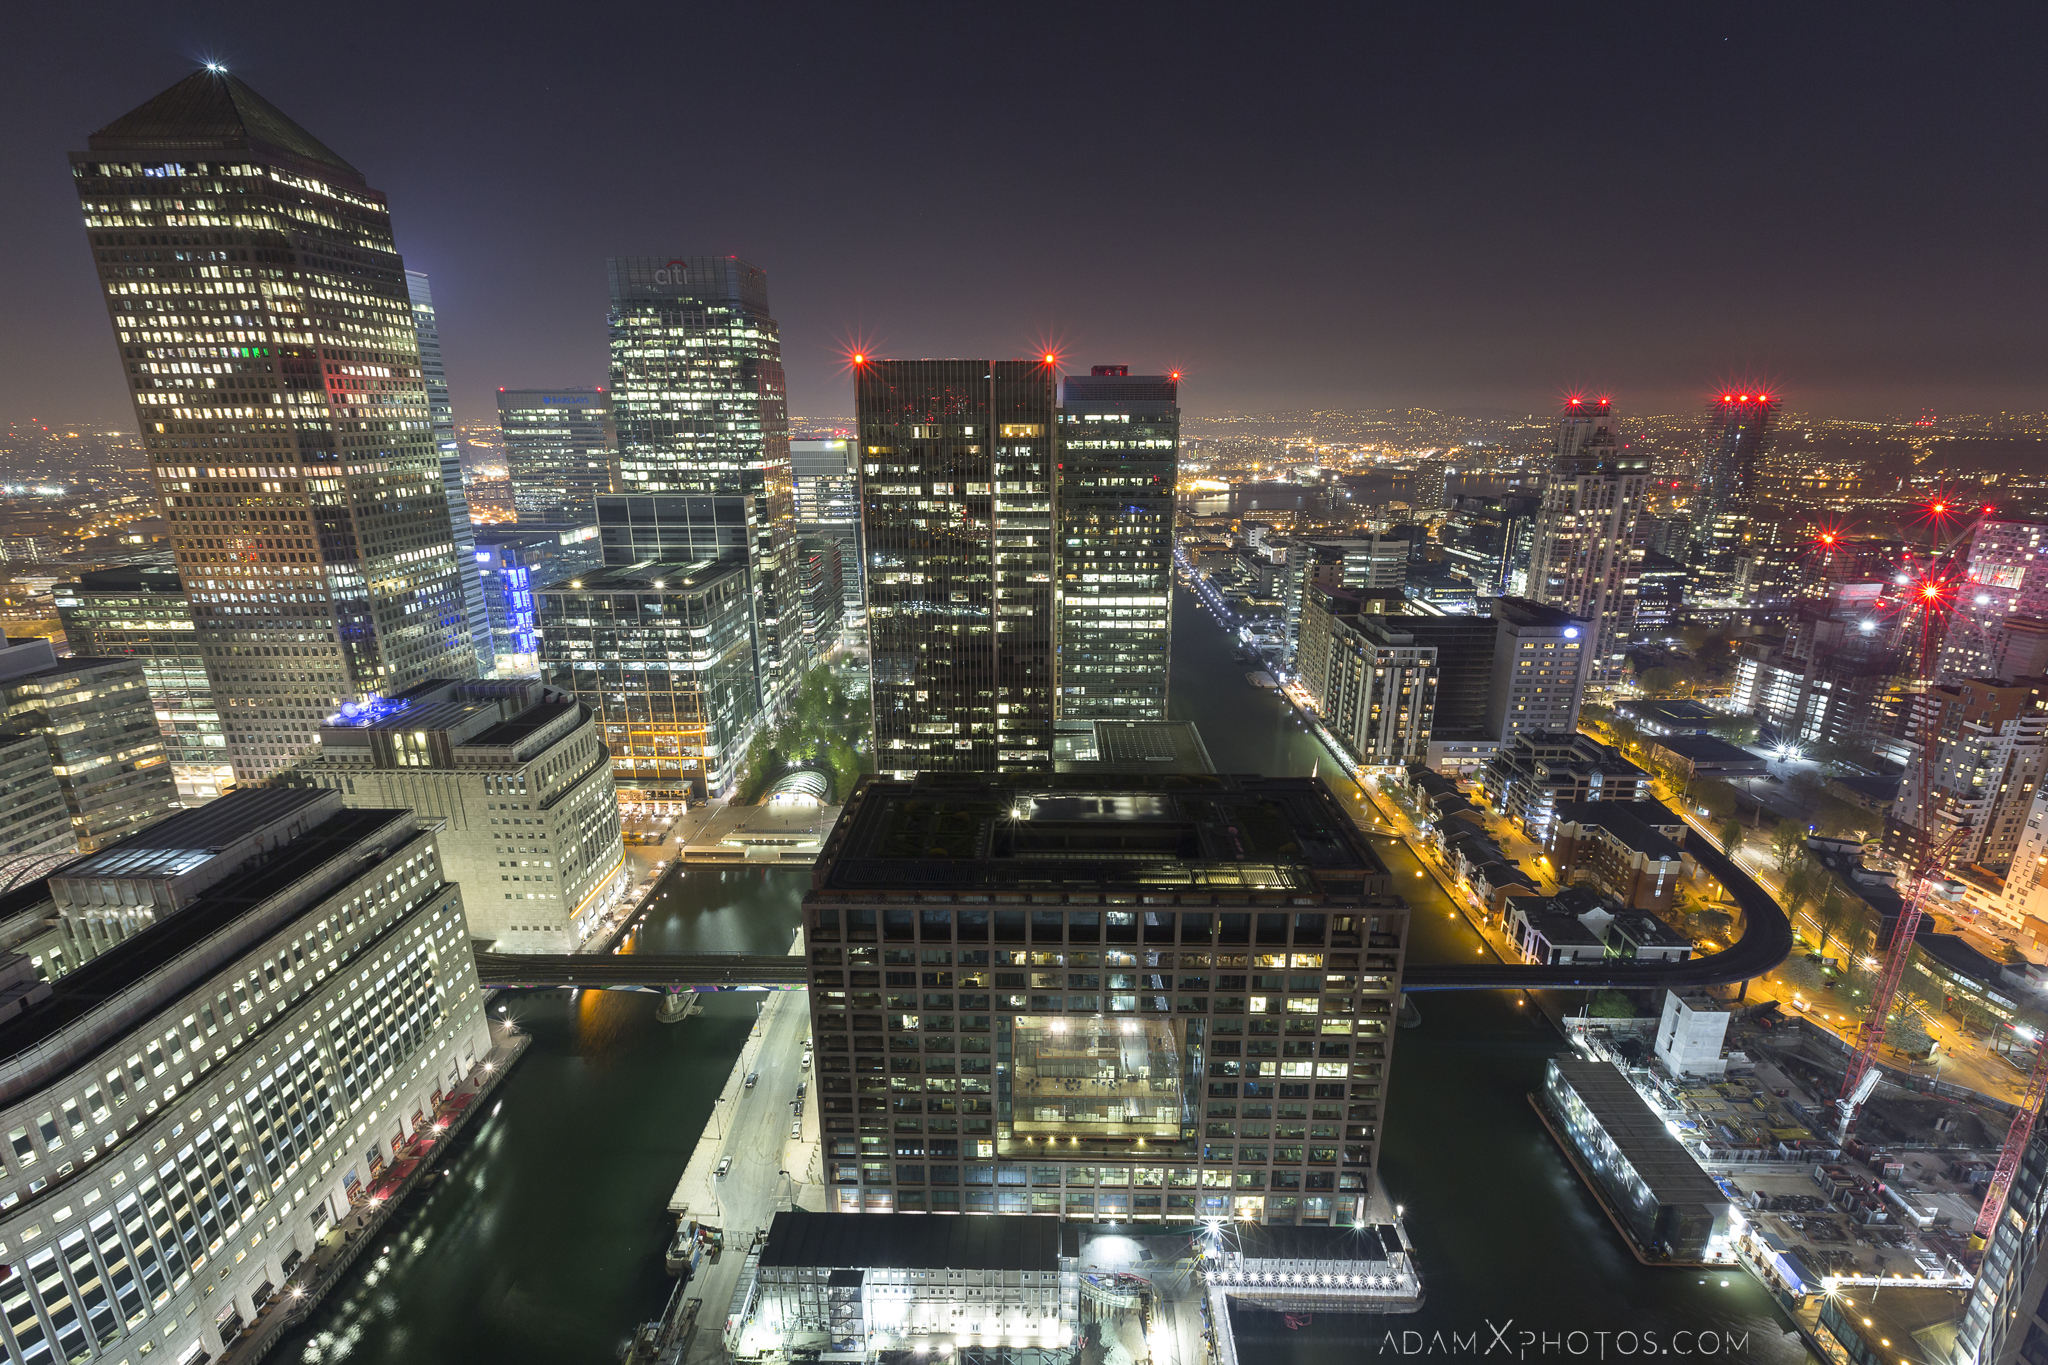 Canary Wharf Rooftop Rooftopping London Urbex High Adam X Urban Exploration Access 2017 Abandoned decay lost forgotten derelict location dangerous night nightttime